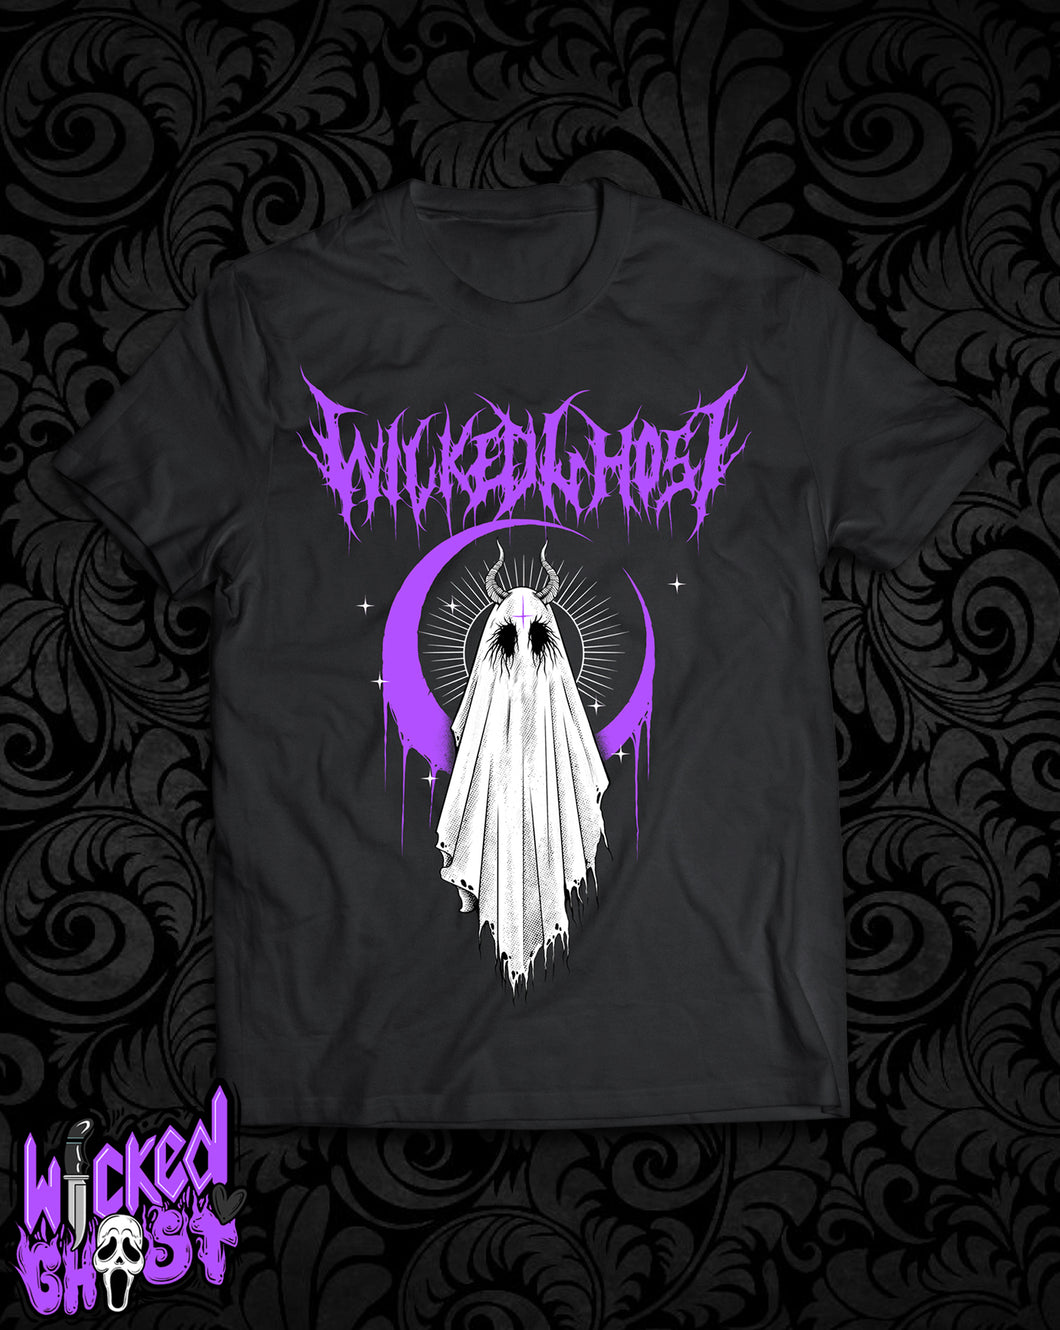 Wicked Ghost Metal T-shirt (Purple)